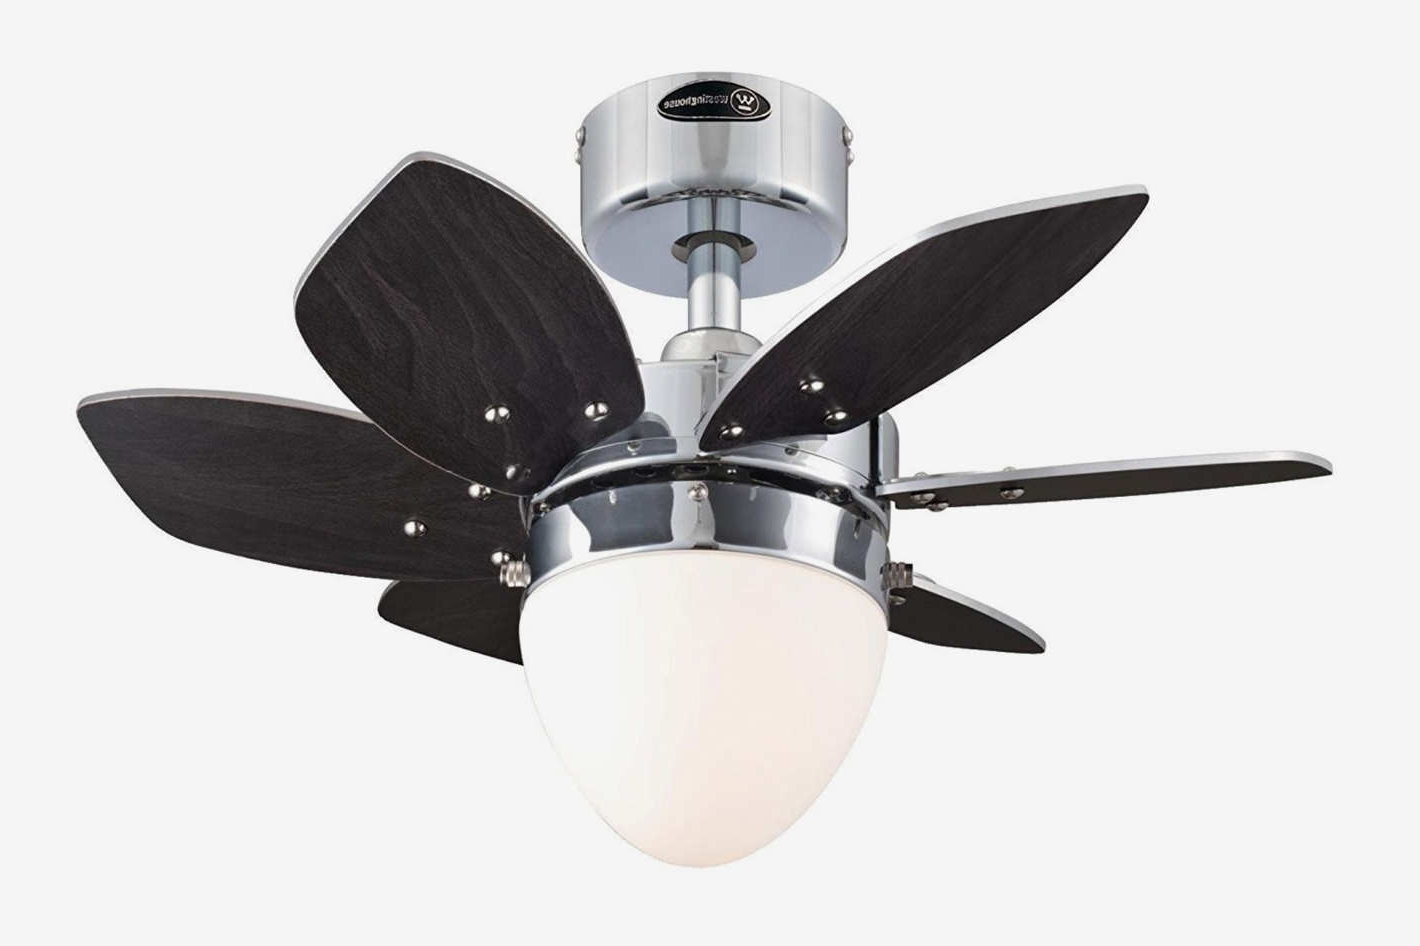 Current The 9 Best Ceiling Fans On Amazon 2018 Intended For Outdoor Ceiling Fans Under $ (View 15 of 20)